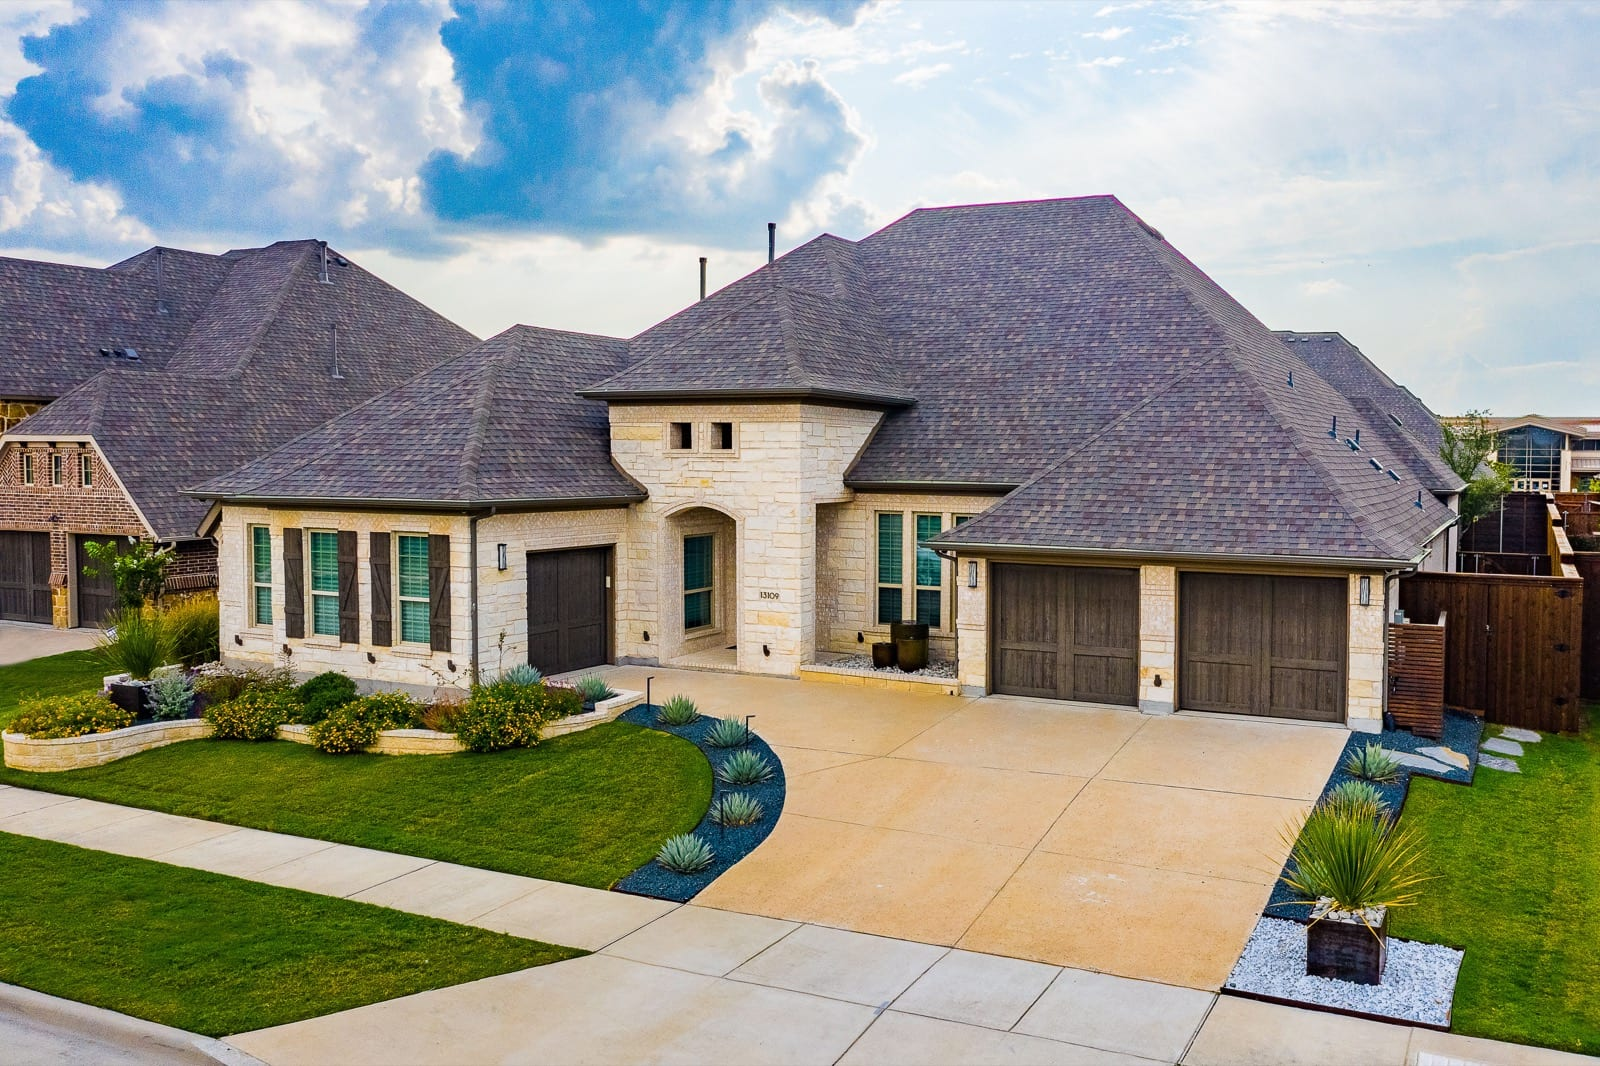 Front Yard Design Services for Dallas, Texas